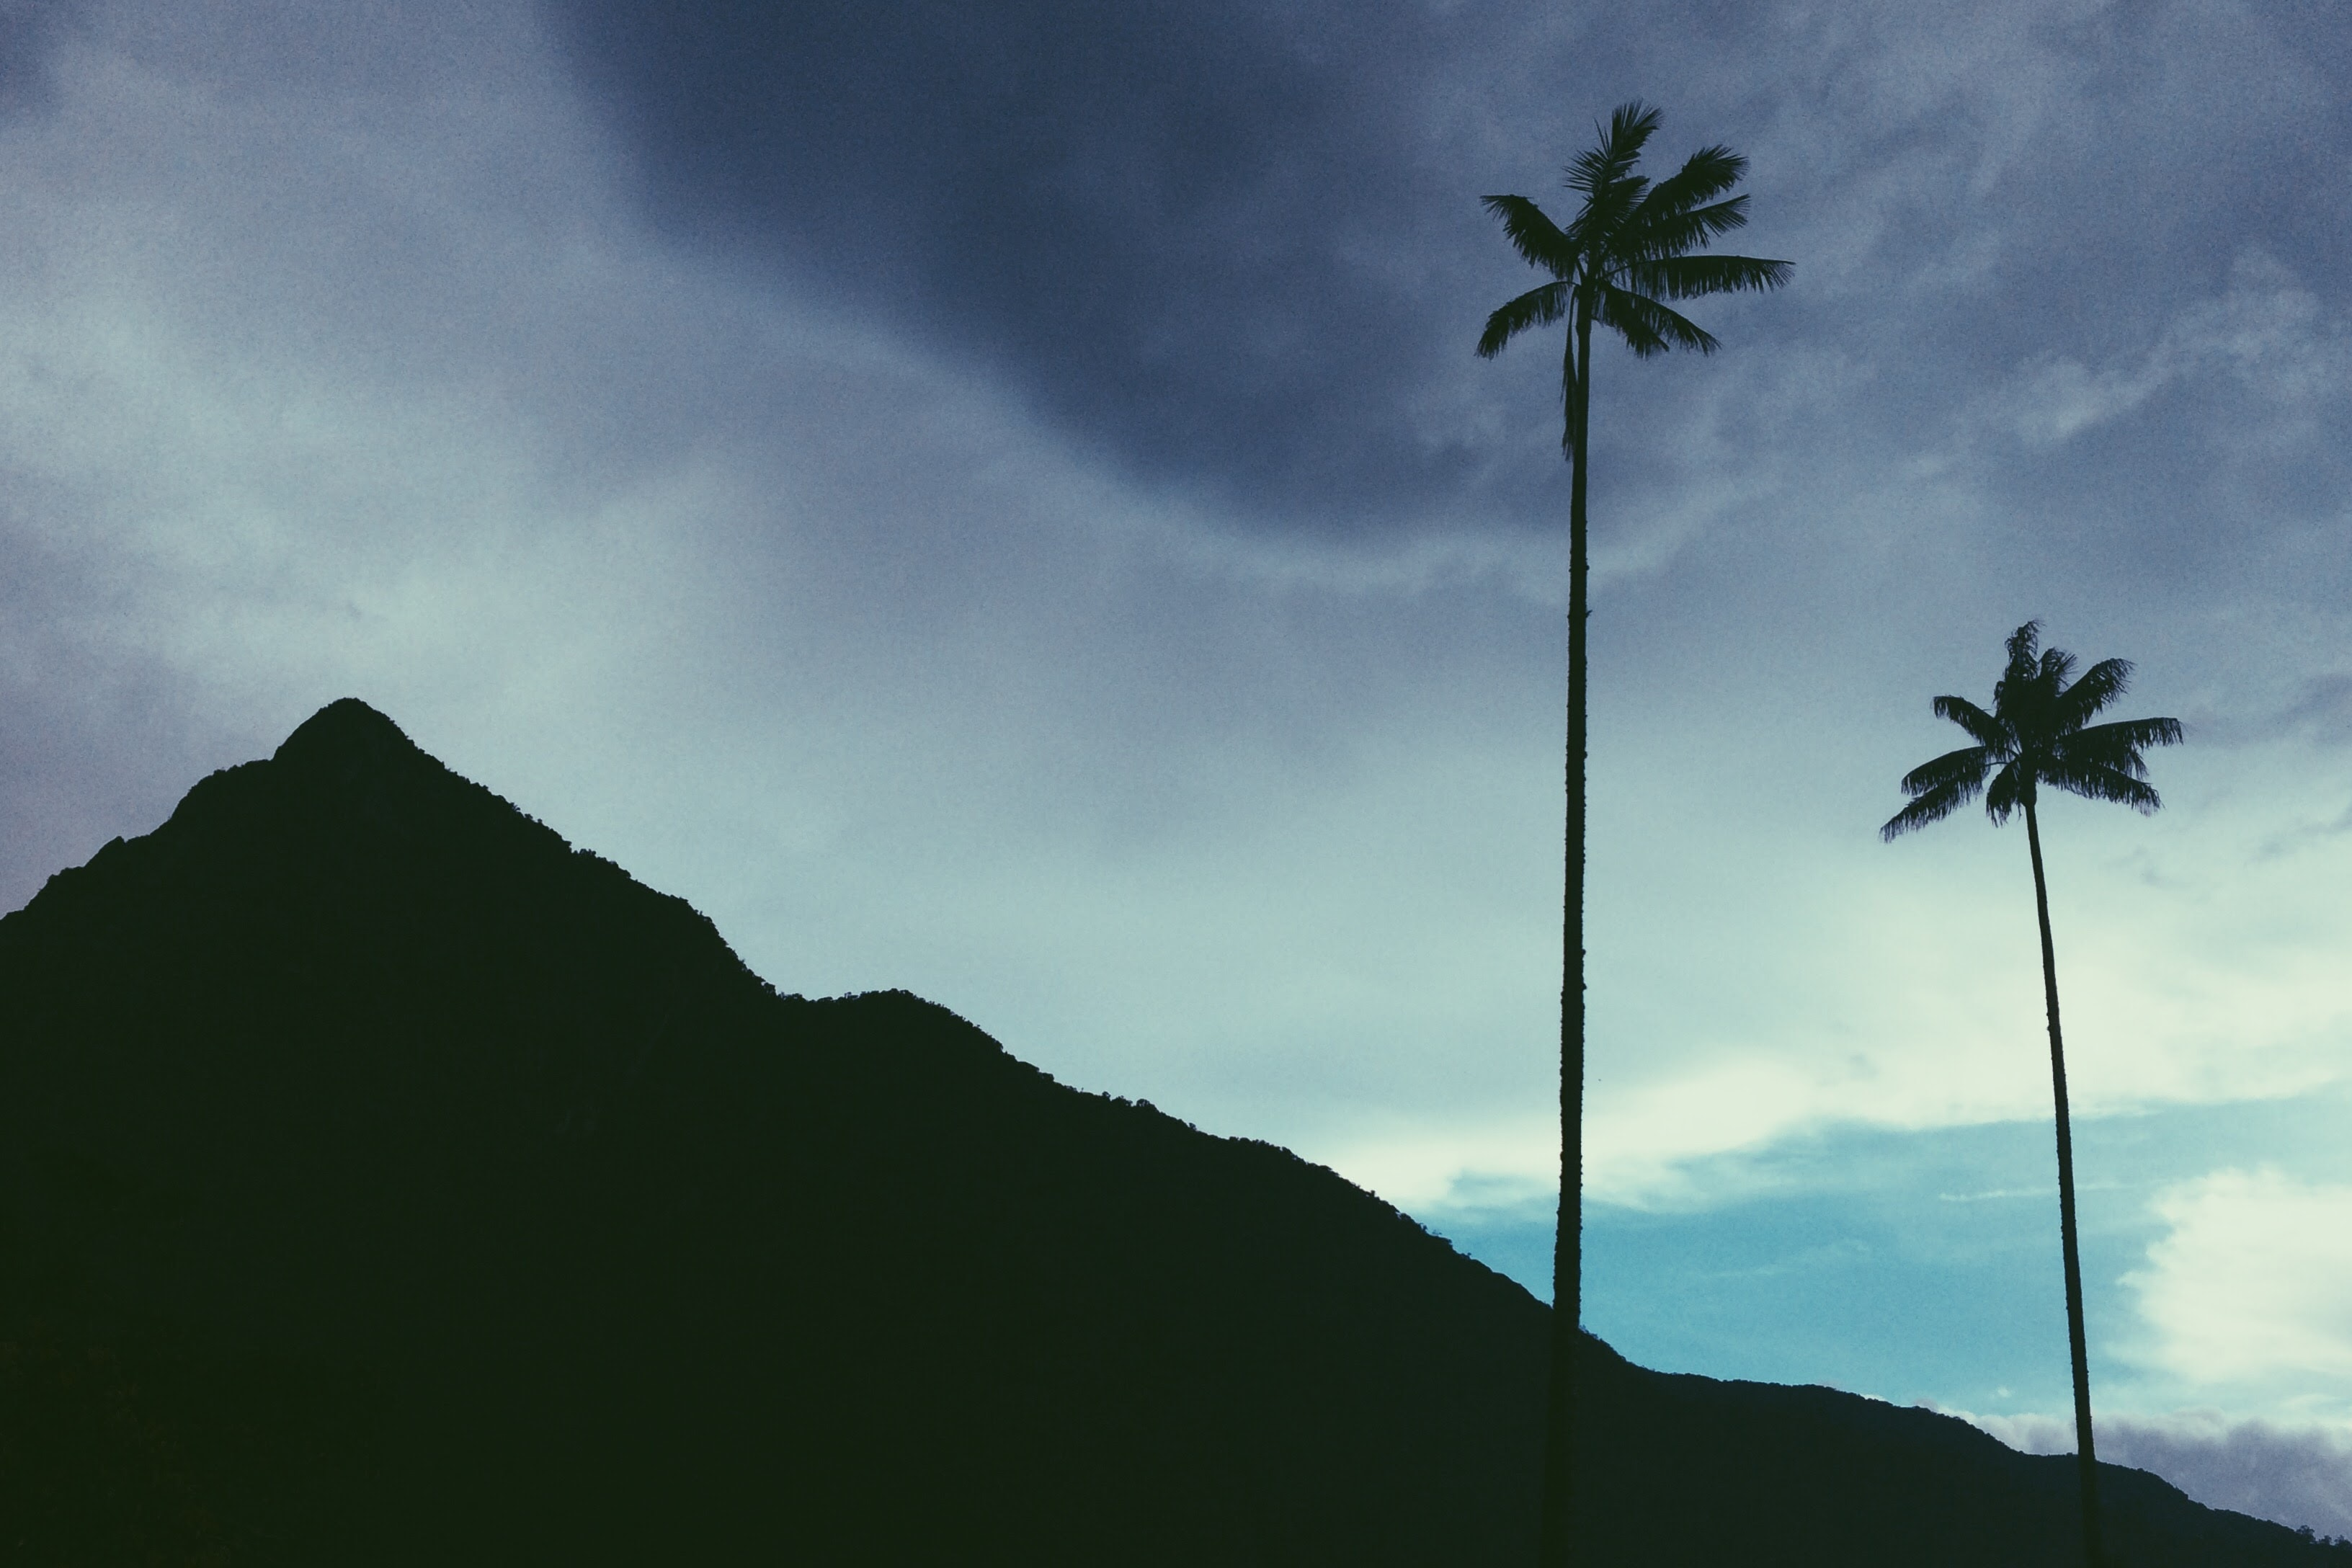 The silhouette of a mountain and palm tree against the blue sky with clouds in Valle Del Cocora